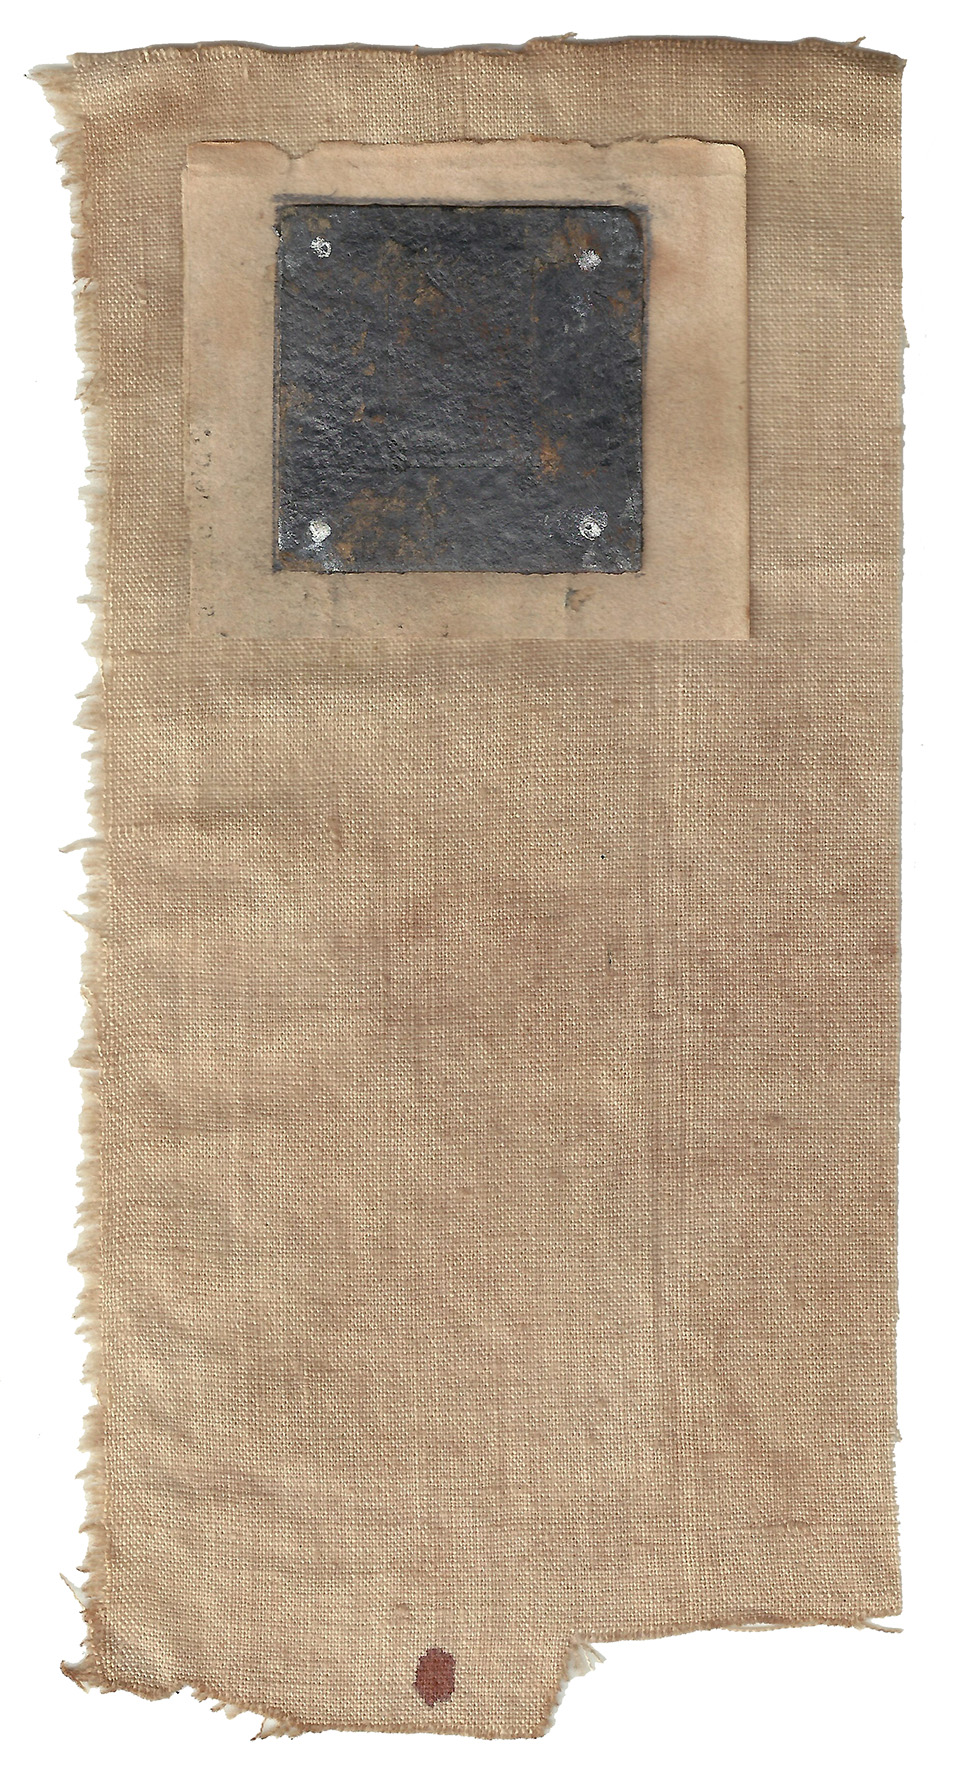 offering II 09/15 3 x 6 inches, paper, blood on cloth